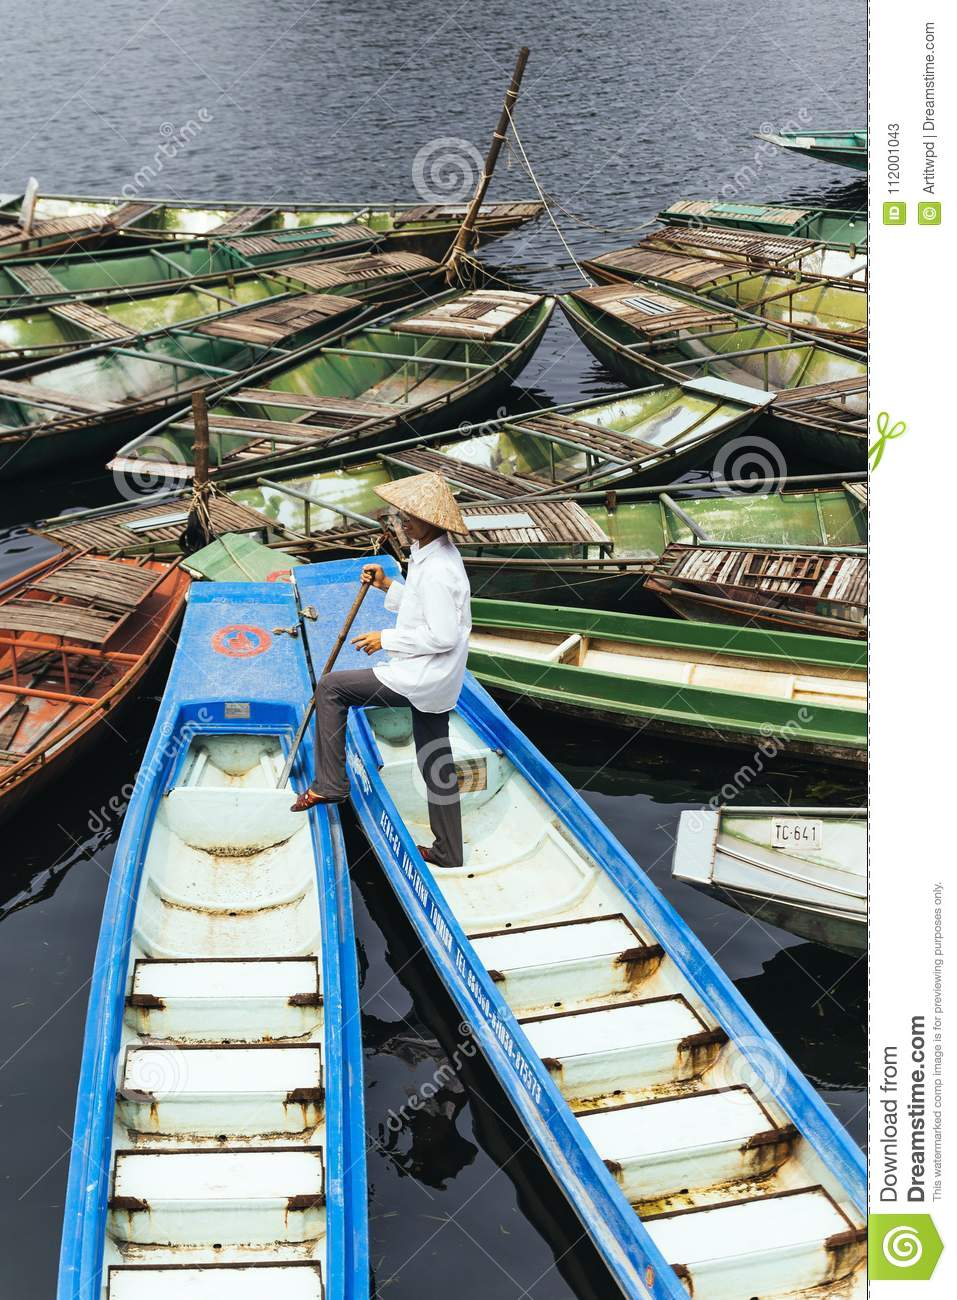 Man wearing white shirt, conical hat with his paddle stand on blue empty boat with many boats stop over the river.